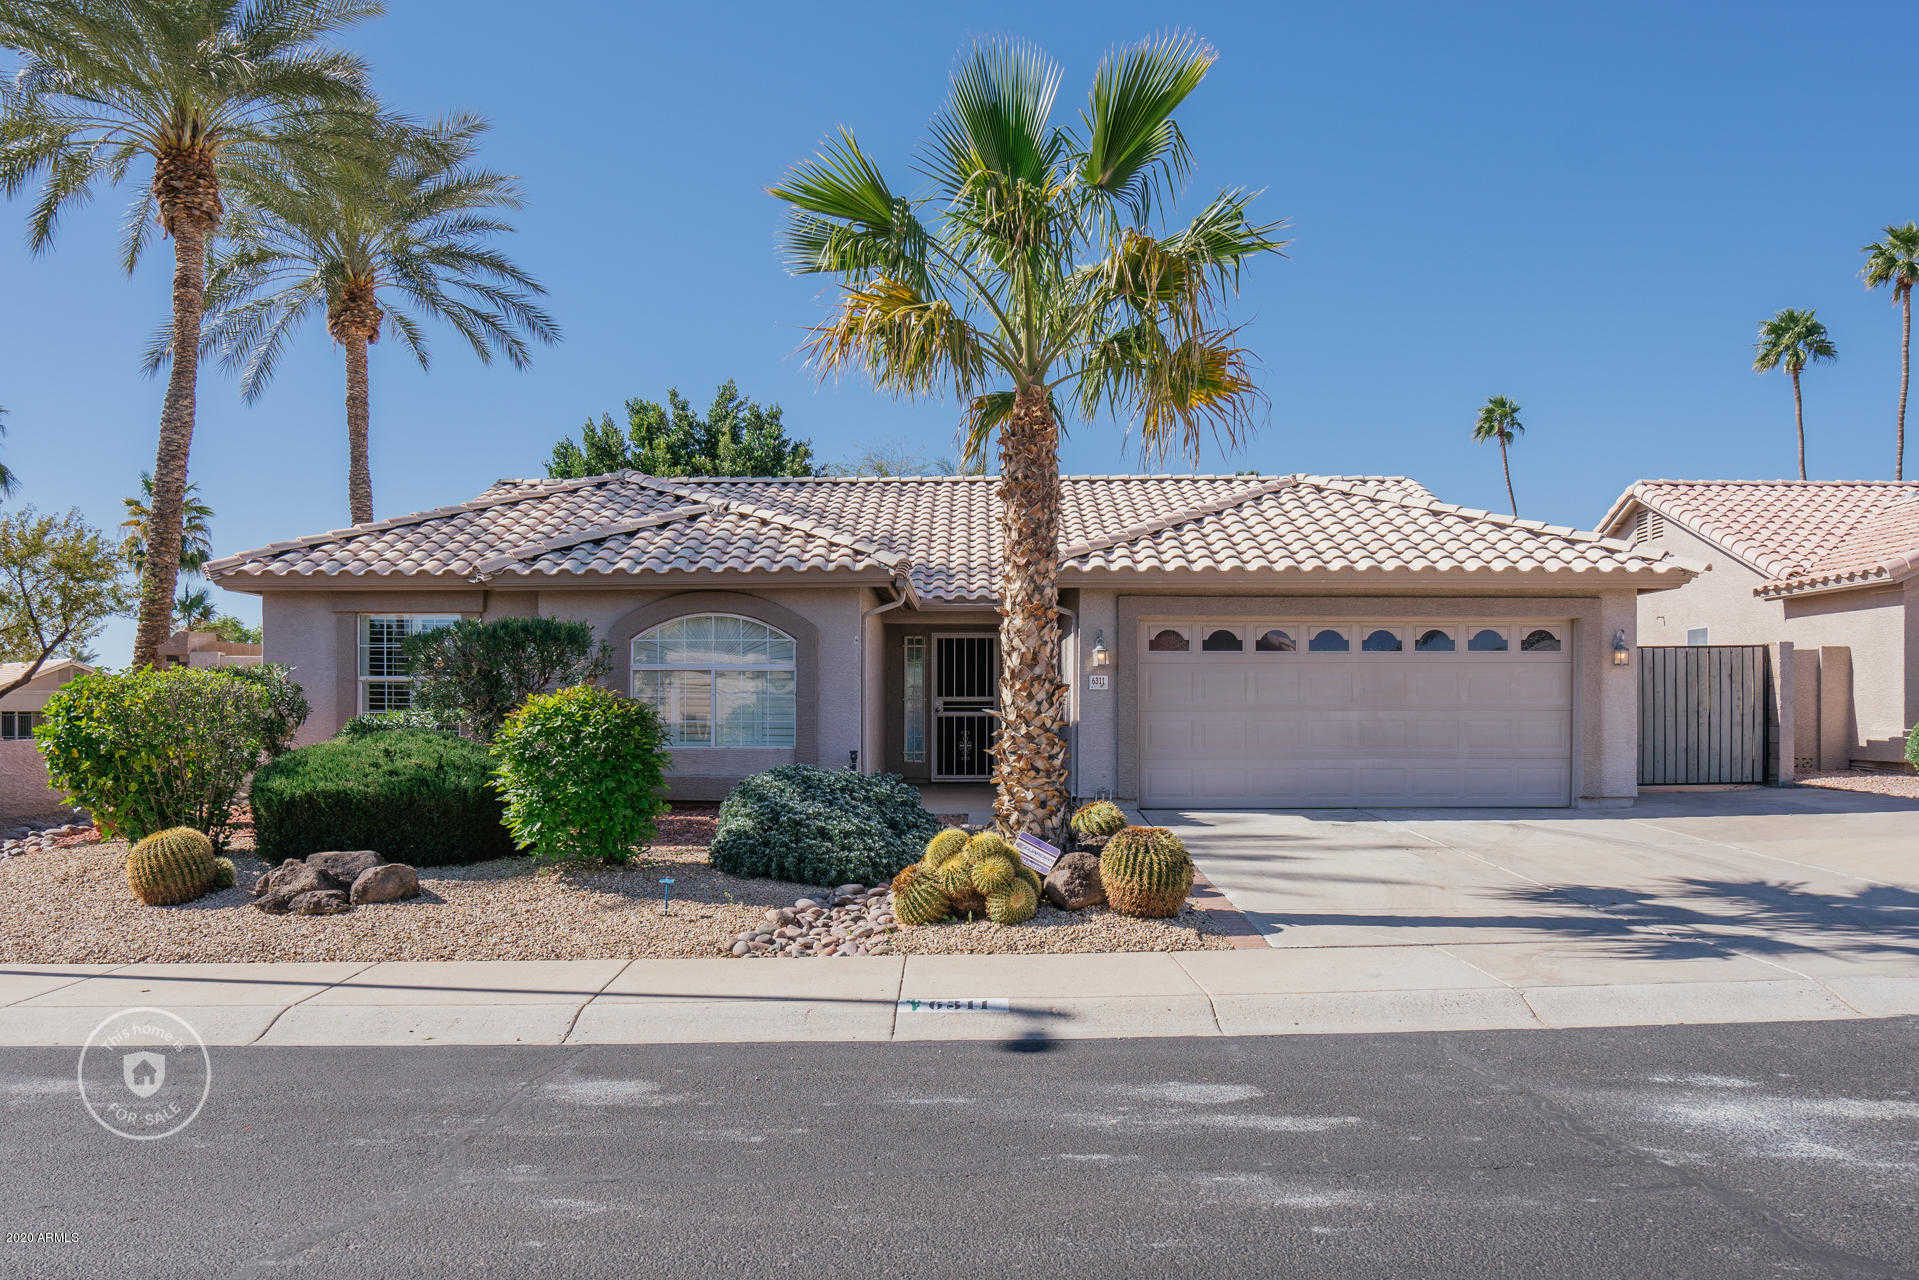 $383,000 - 3Br/2Ba - Home for Sale in Parcel 8 At Arrowhead Ranch, Glendale